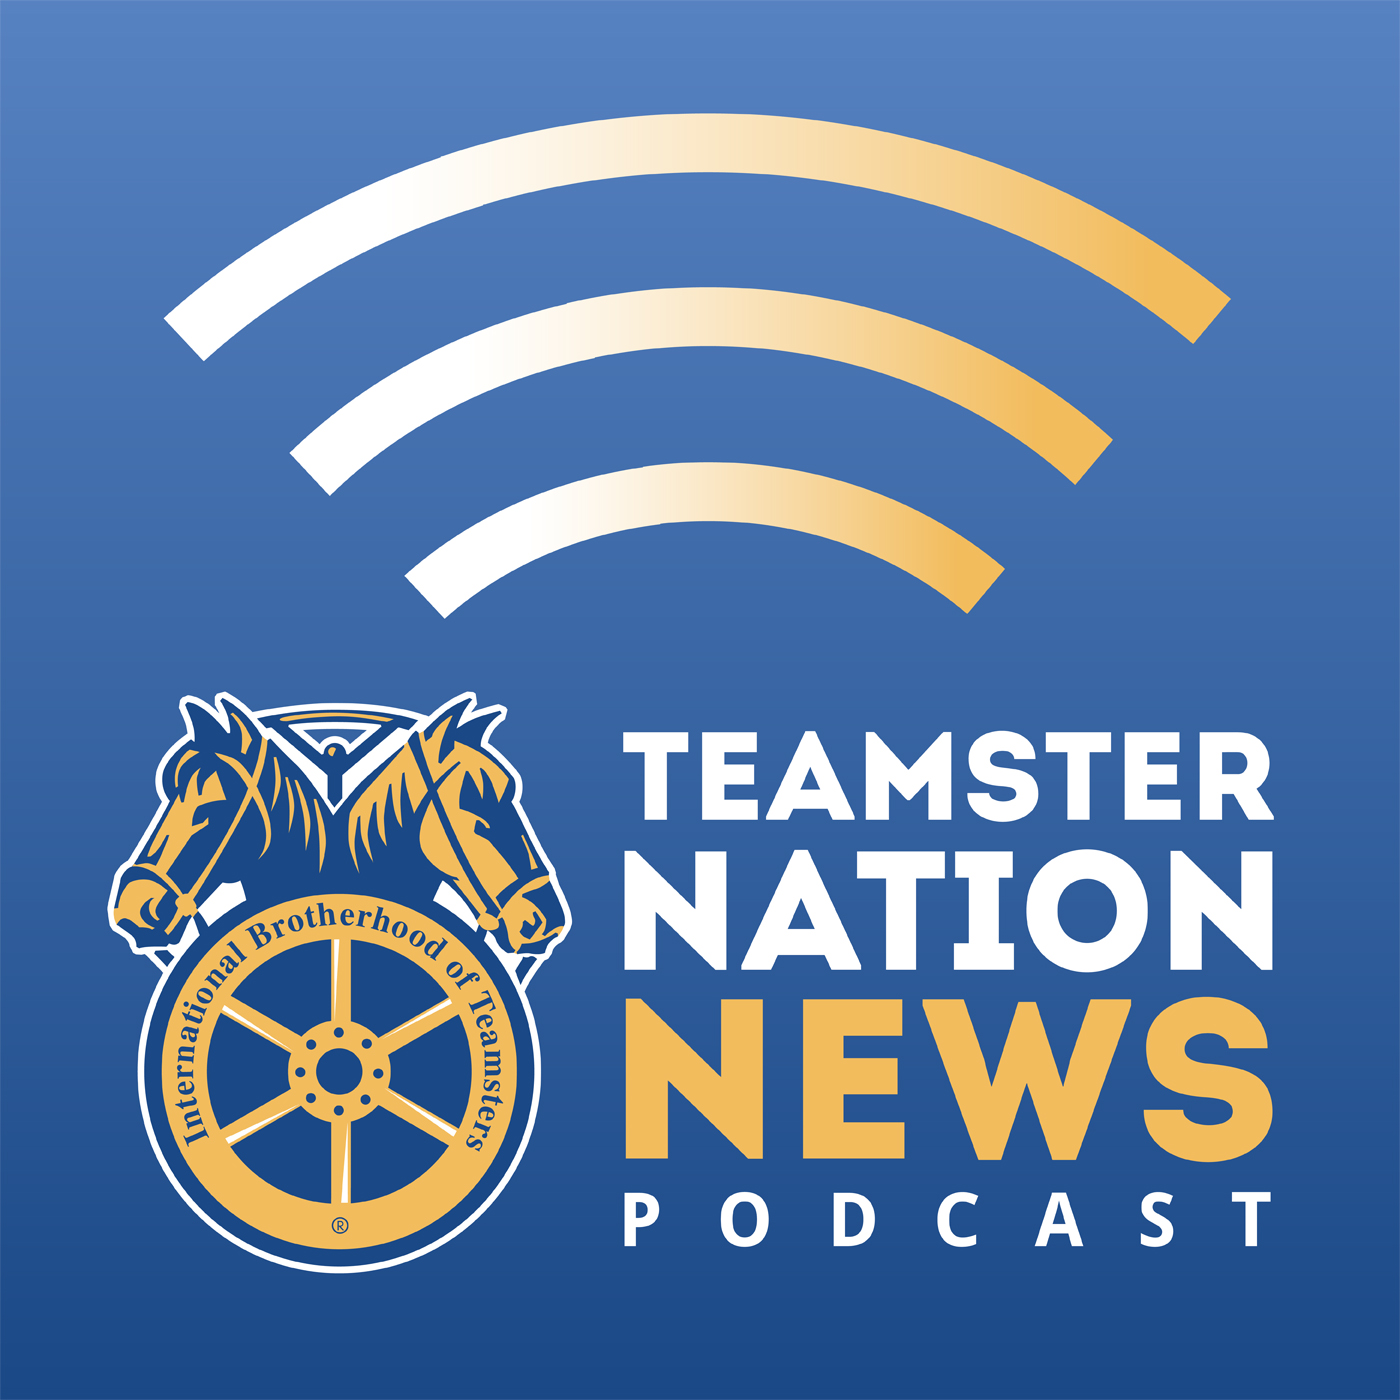 Listen to Teamster Nation News for June 29-July 5